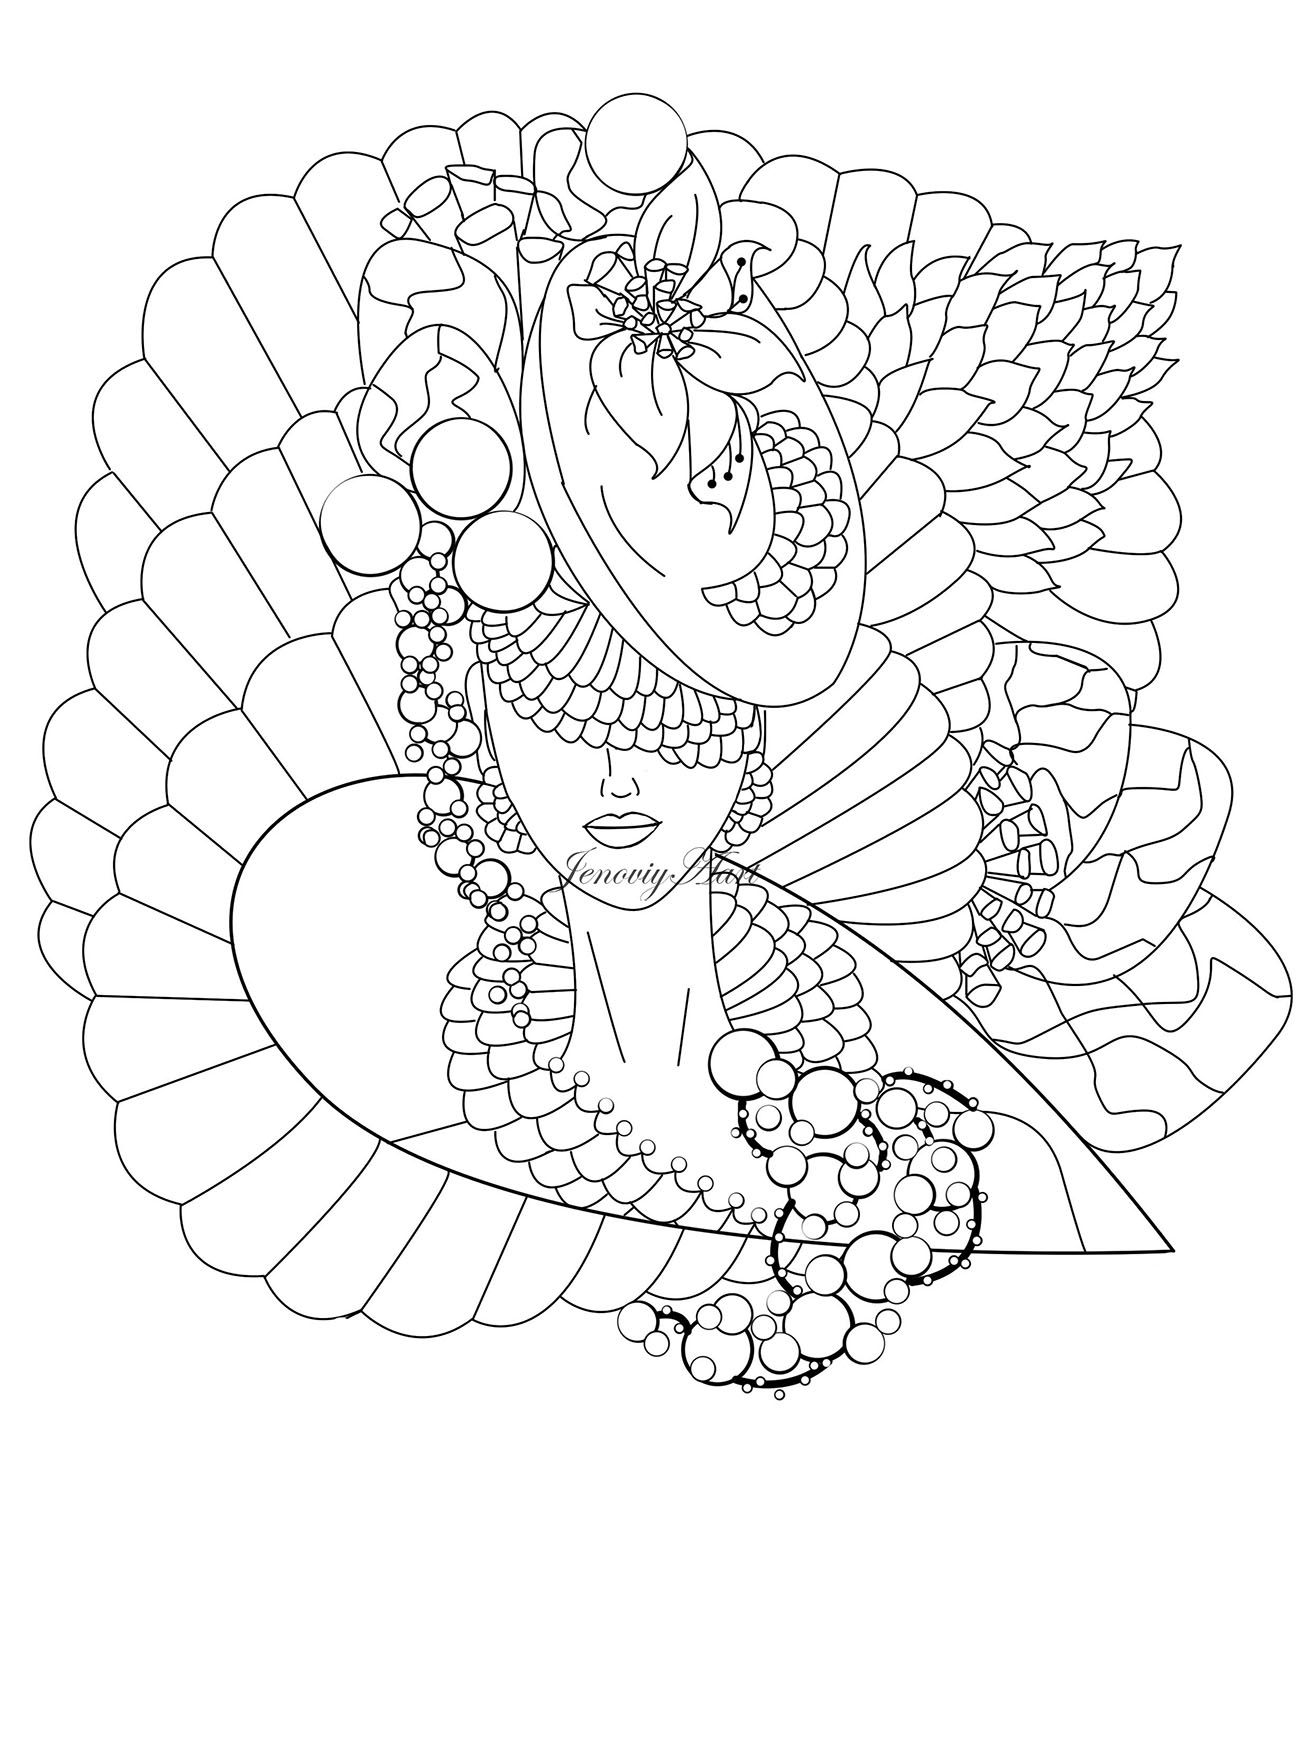 Digital Pages PDF Download Pages Coloring Pages Art Therapy Grown up ...